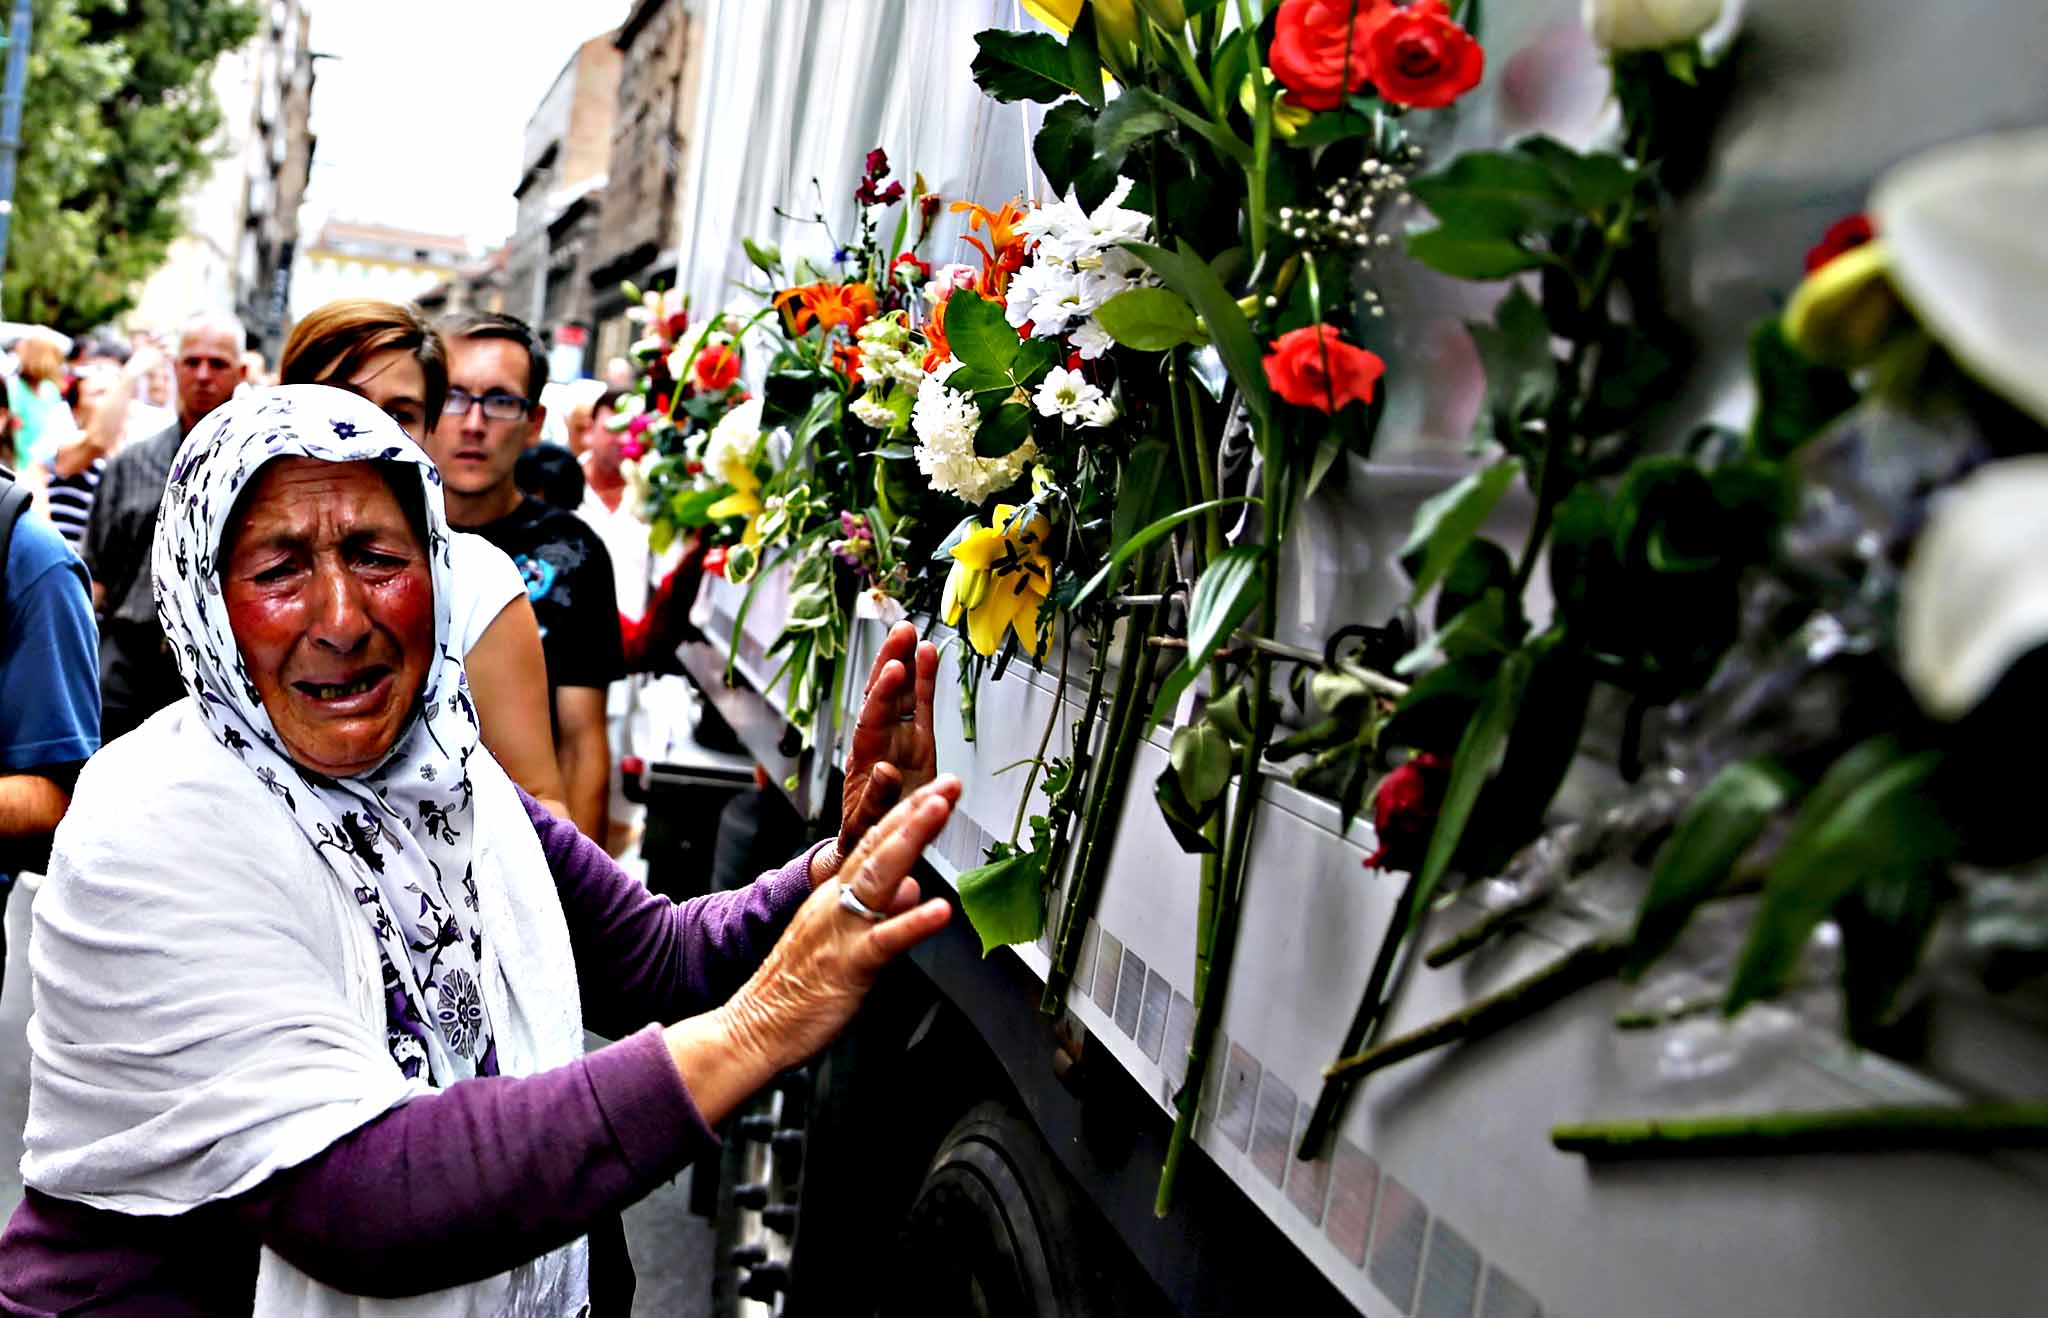 A woman cries beside a truck carrying 136 coffins of newly identified victims of the 1995 Srebrenica massacre, in front of the presidential building in Sarajevo...A woman cries beside a truck carrying 136 coffins of newly identified victims of the 1995 Srebrenica massacre, in front of the presidential building in Sarajevo July 9, 2015. The bodies of the 136 recently identified victims of Srebrenica massacre will be transported to the memorial centre in Potocari where they will be buried on July 11, the anniversary of the massacre when Bosnian Serb forces slaughtered 8,000 Muslim men and boys and buried them in mass graves in Europe's worst massacre since World War Two